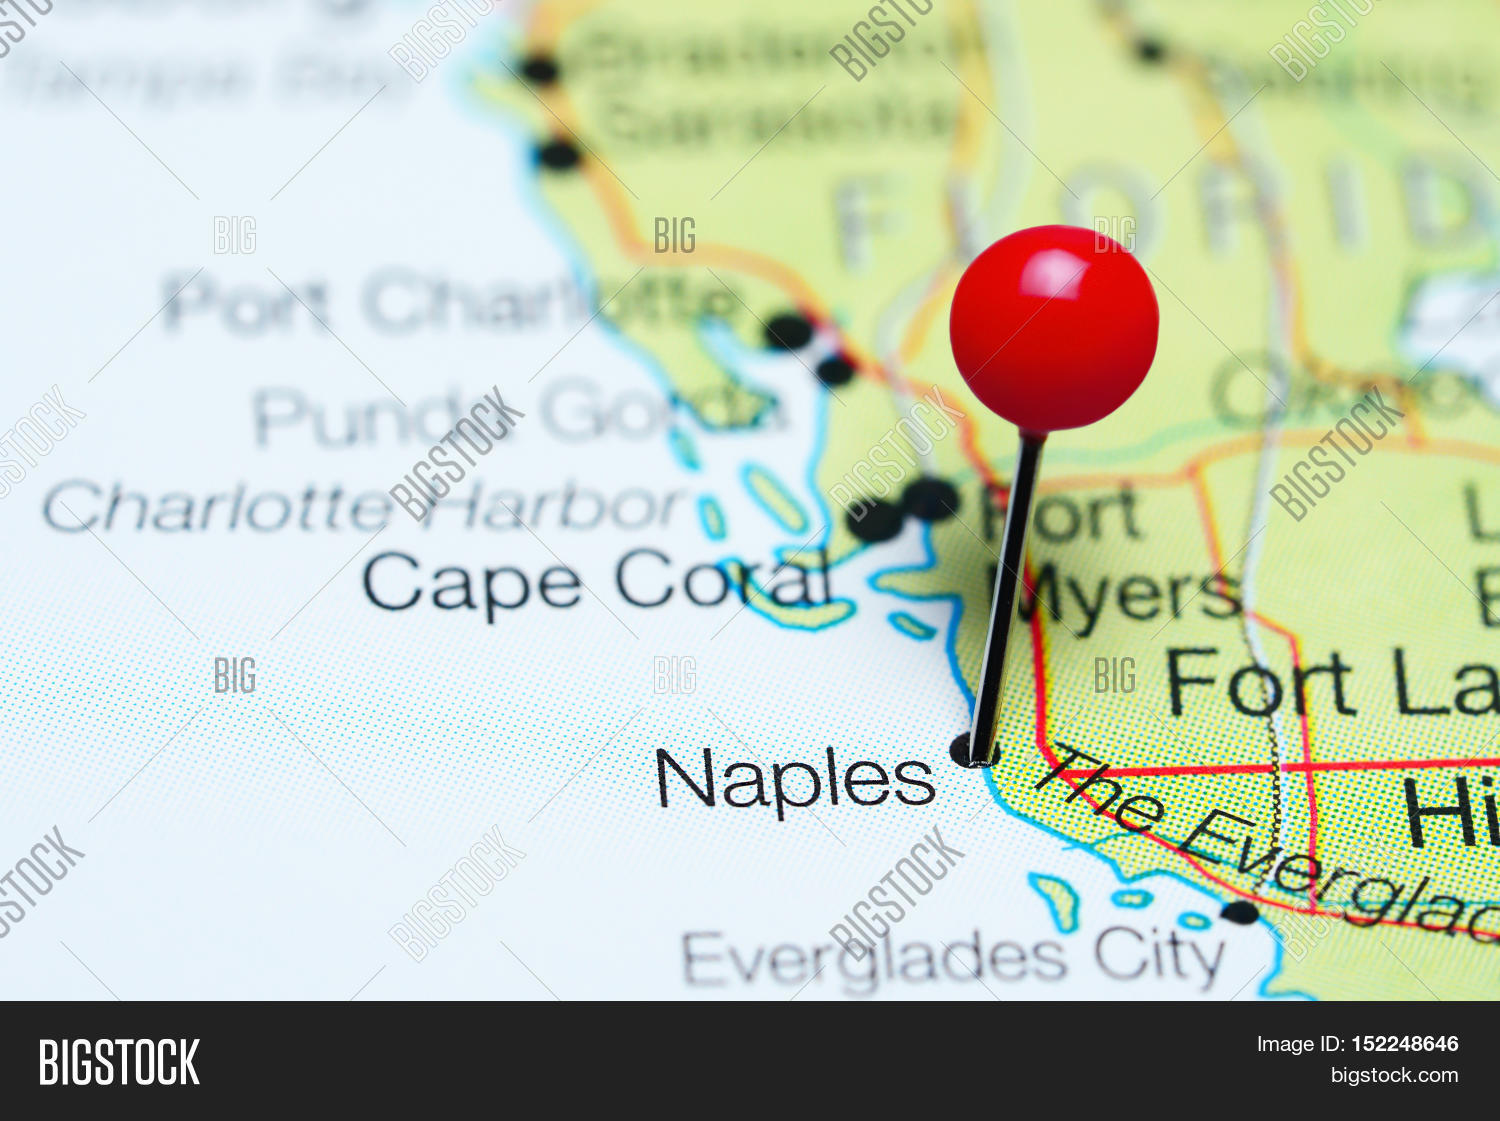 Florida Adobe Illustrator Map With Counties Cities County Seats - Florida map everglades city